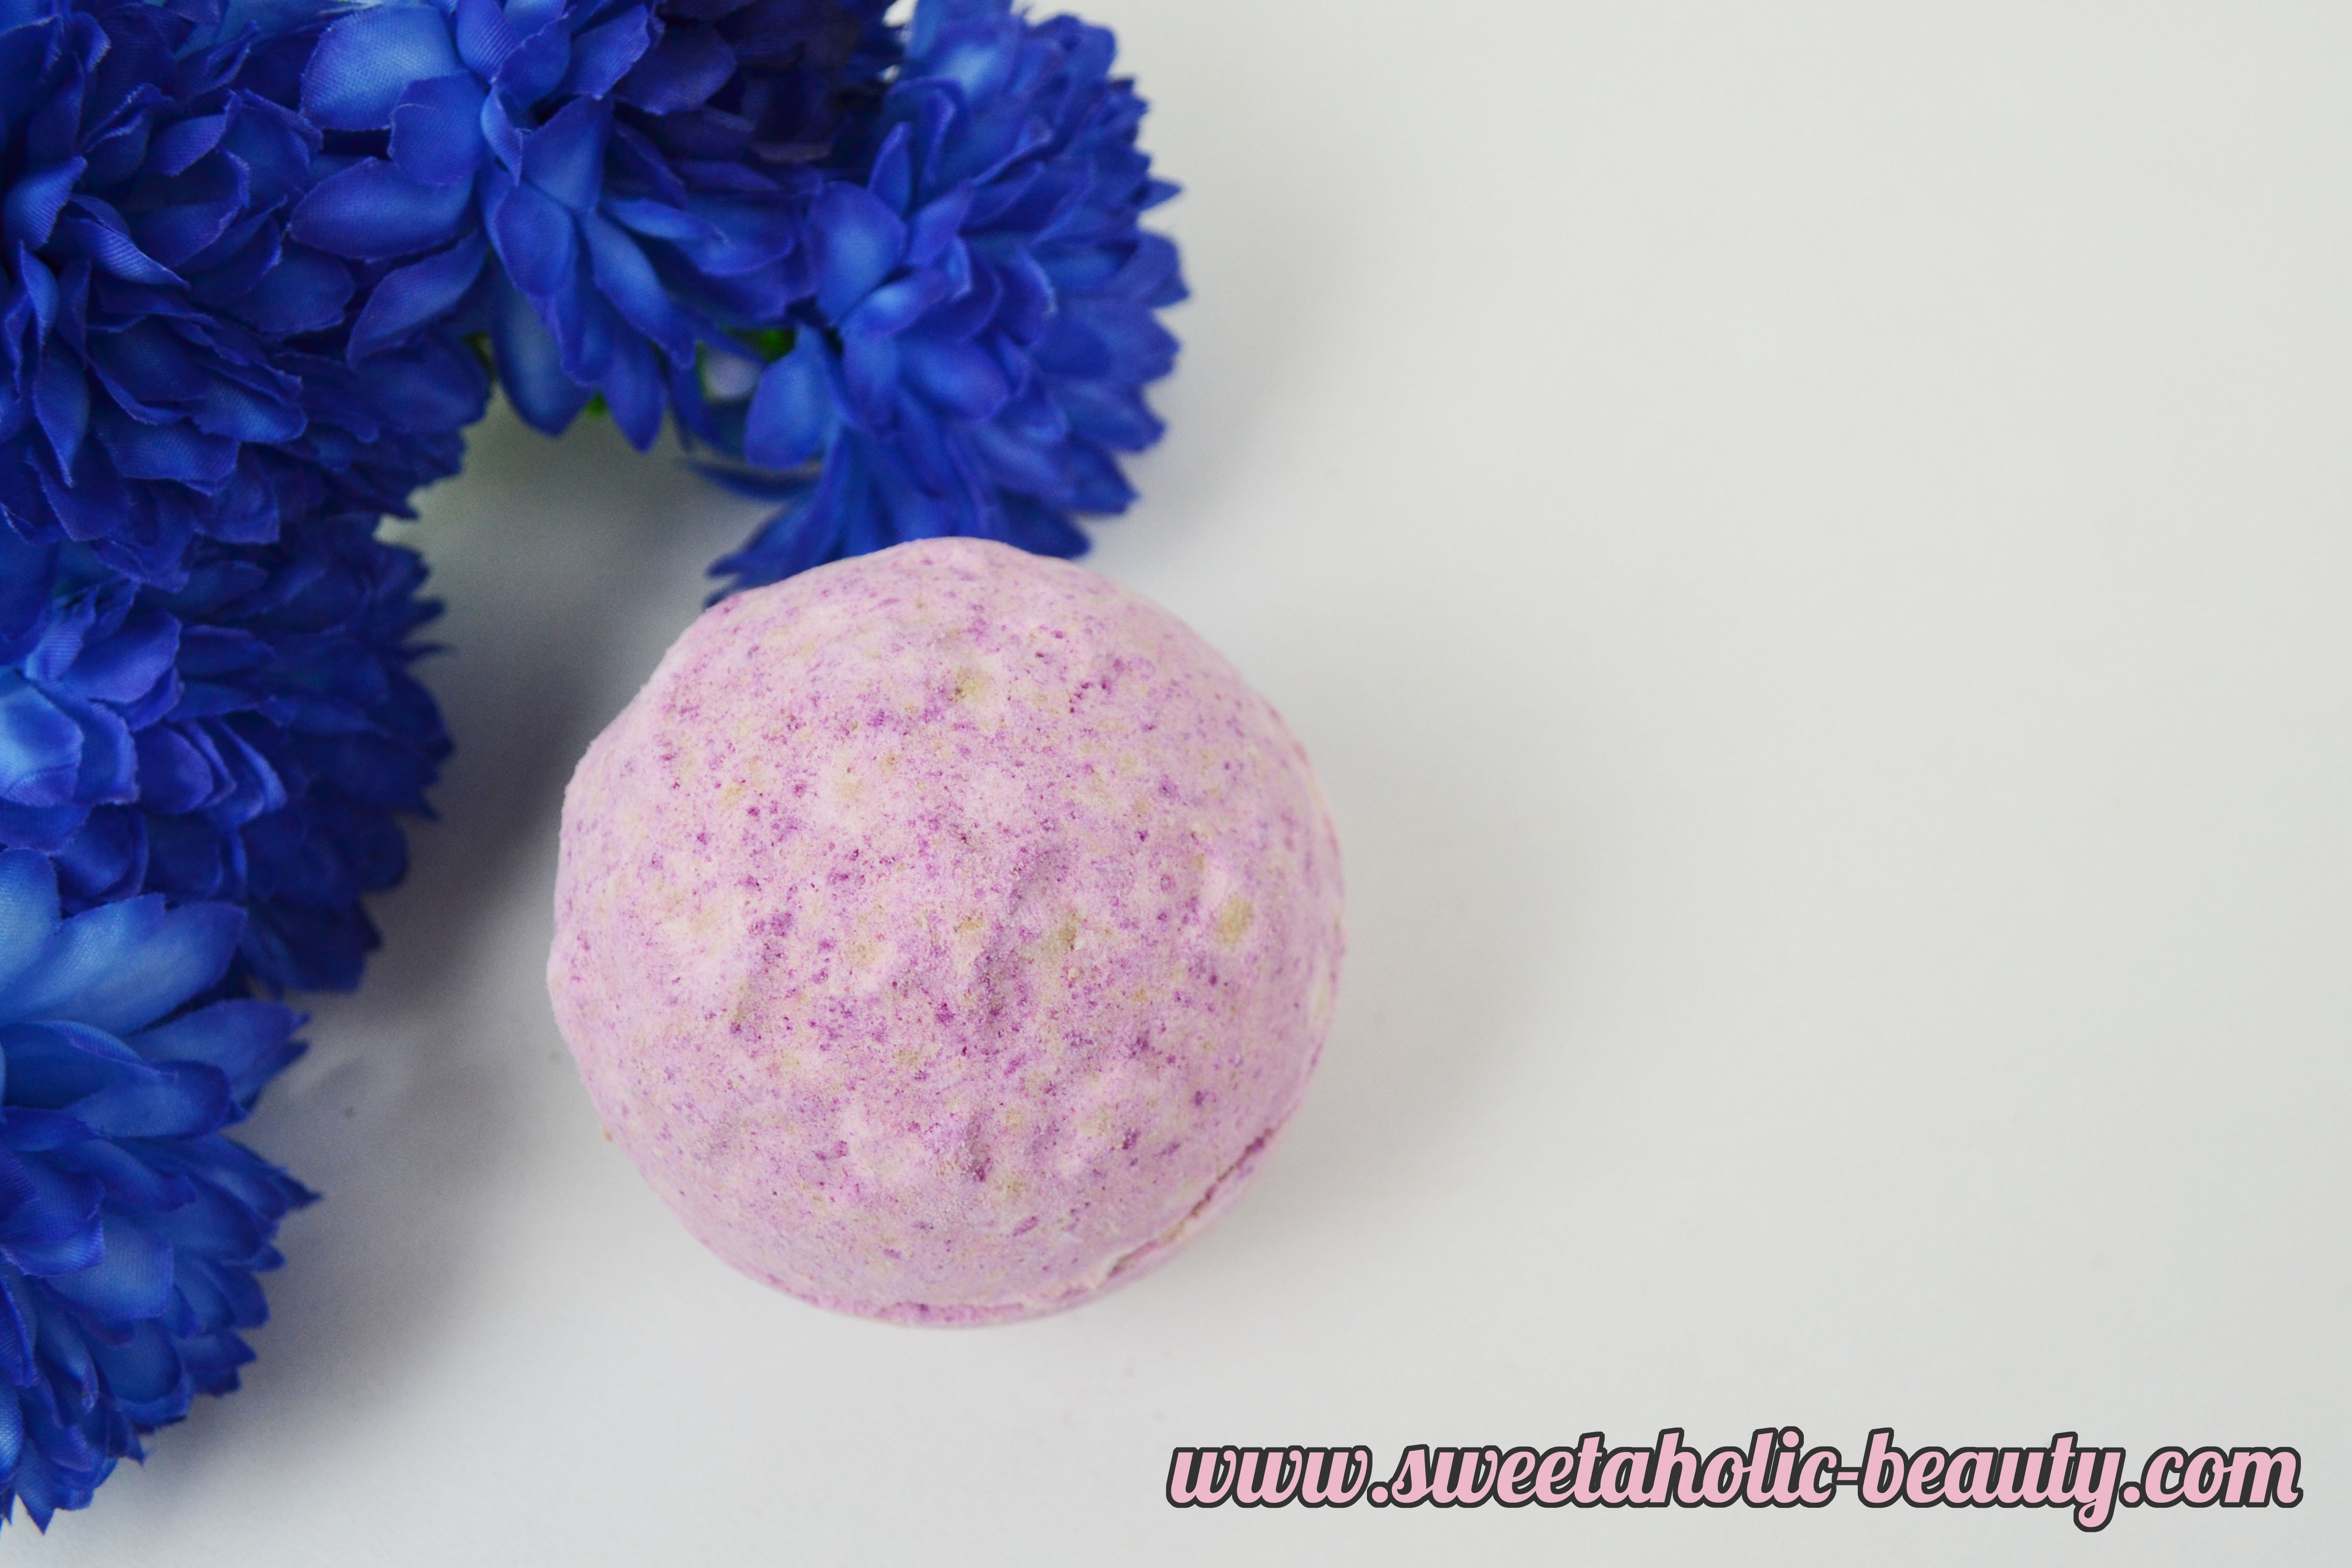 Relax with Lush - Sweetaholic Beauty